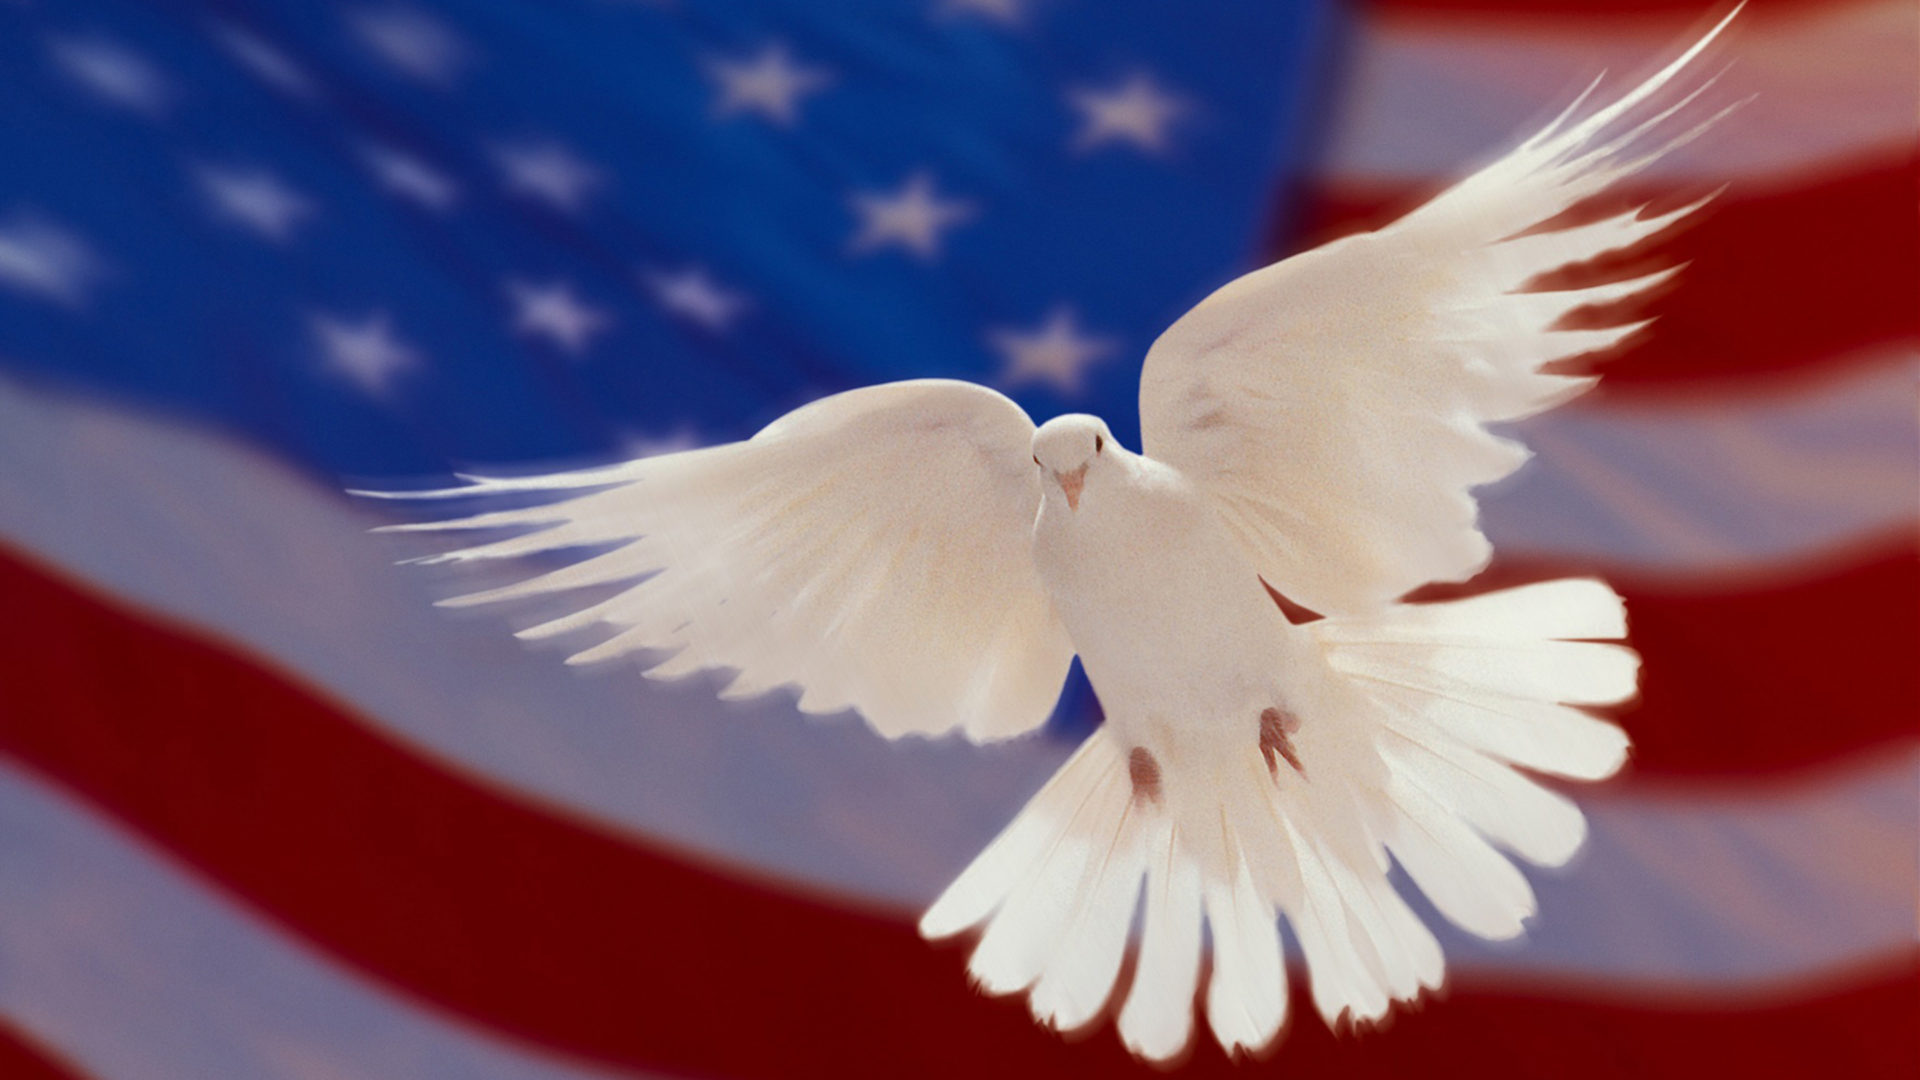 Cute Ducks In Water Wallpaper American Flag And White Dove Of Peace Hd Wallpapers For